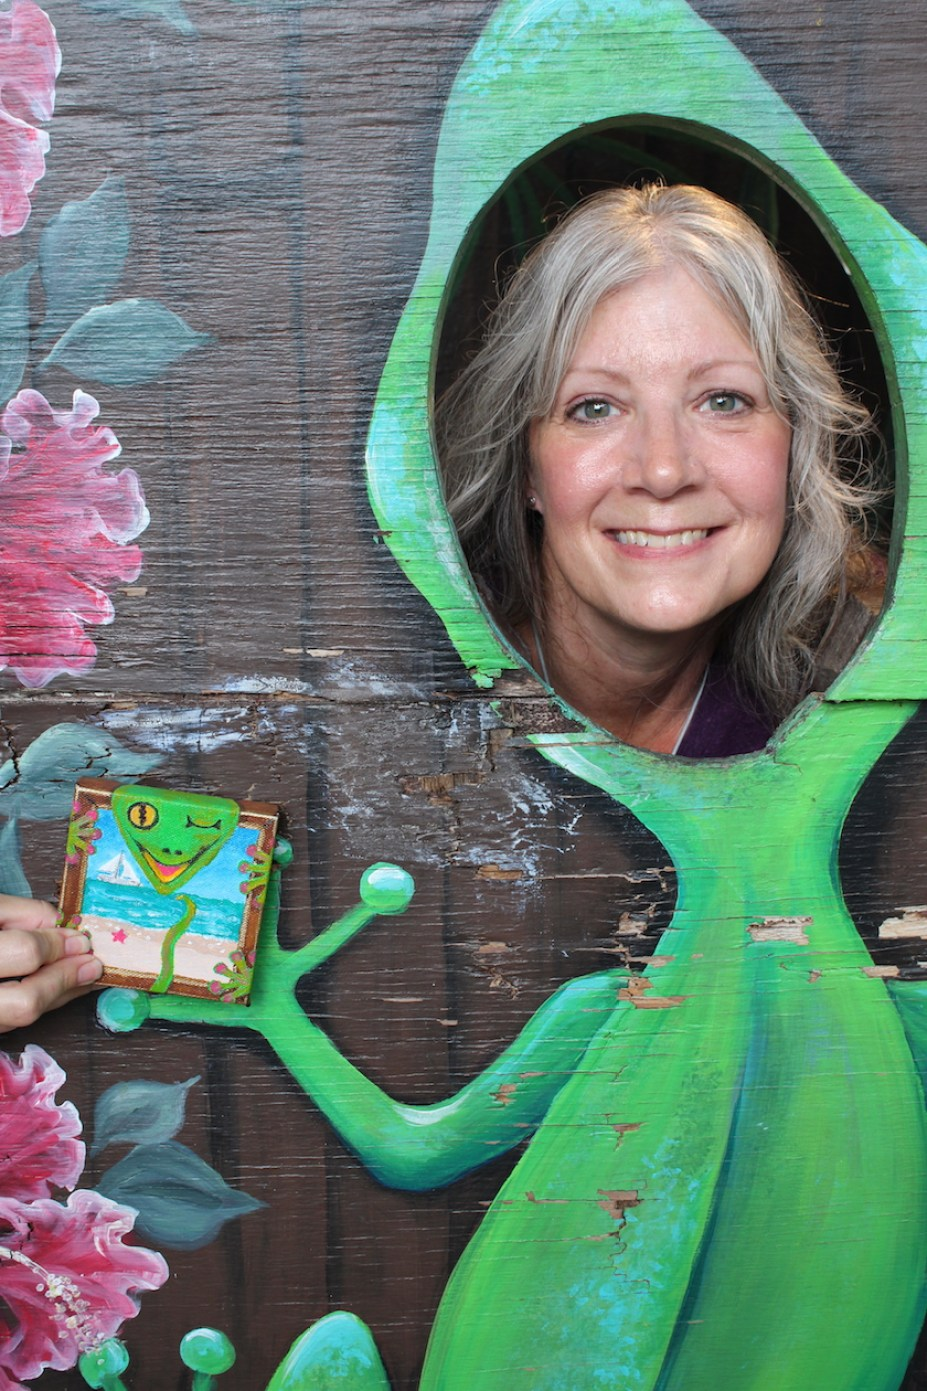 A woman with her head in a cutout of a green painted gecko on black background with a person holding a small square gecko art piece in the frame.